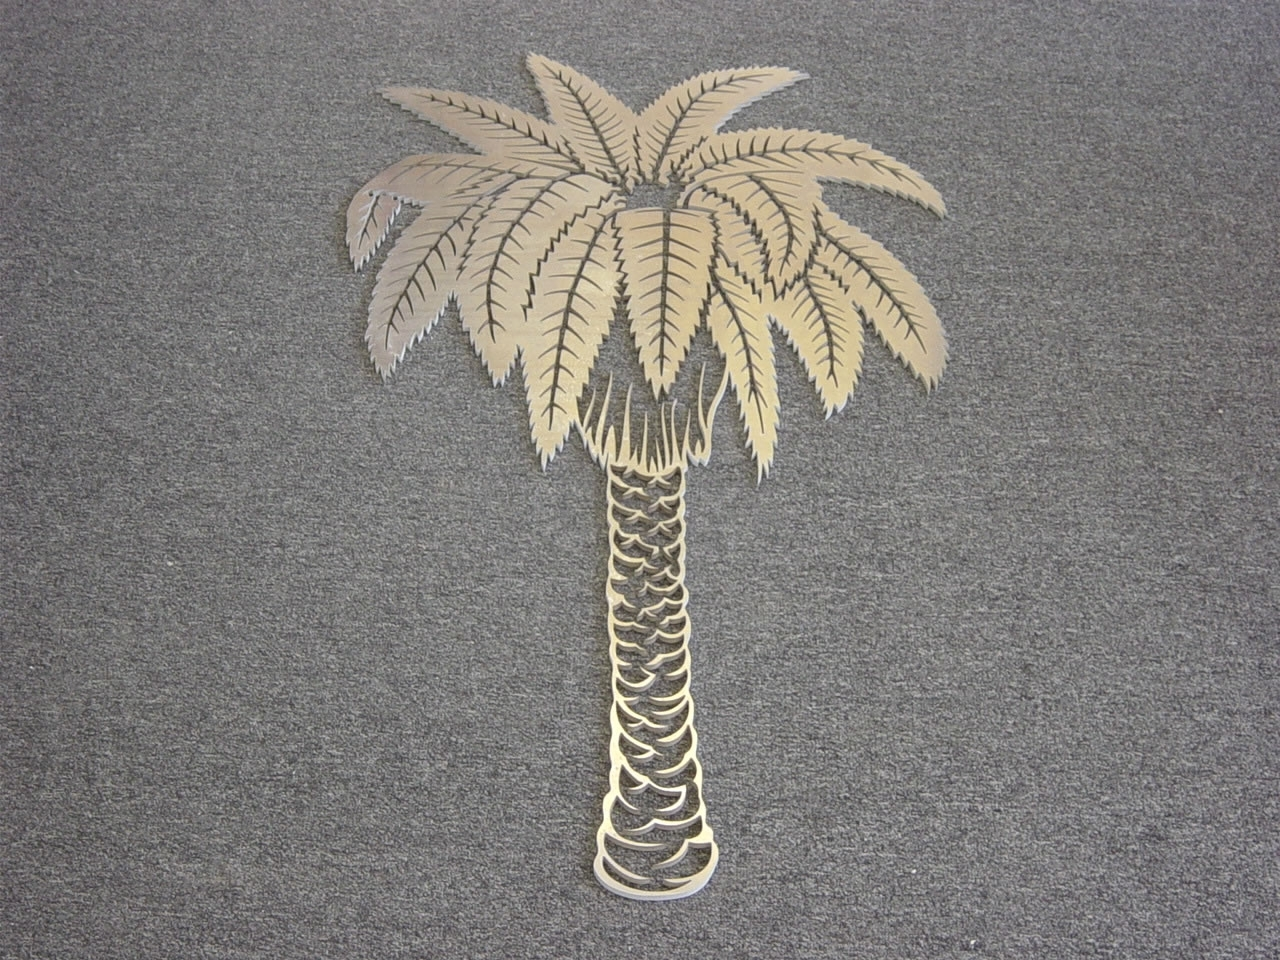 Waterjet Metal Art Ornamental / Aluminum Palm Tree, Waterjet Pertaining To Popular Palm Tree Metal Art (View 14 of 15)